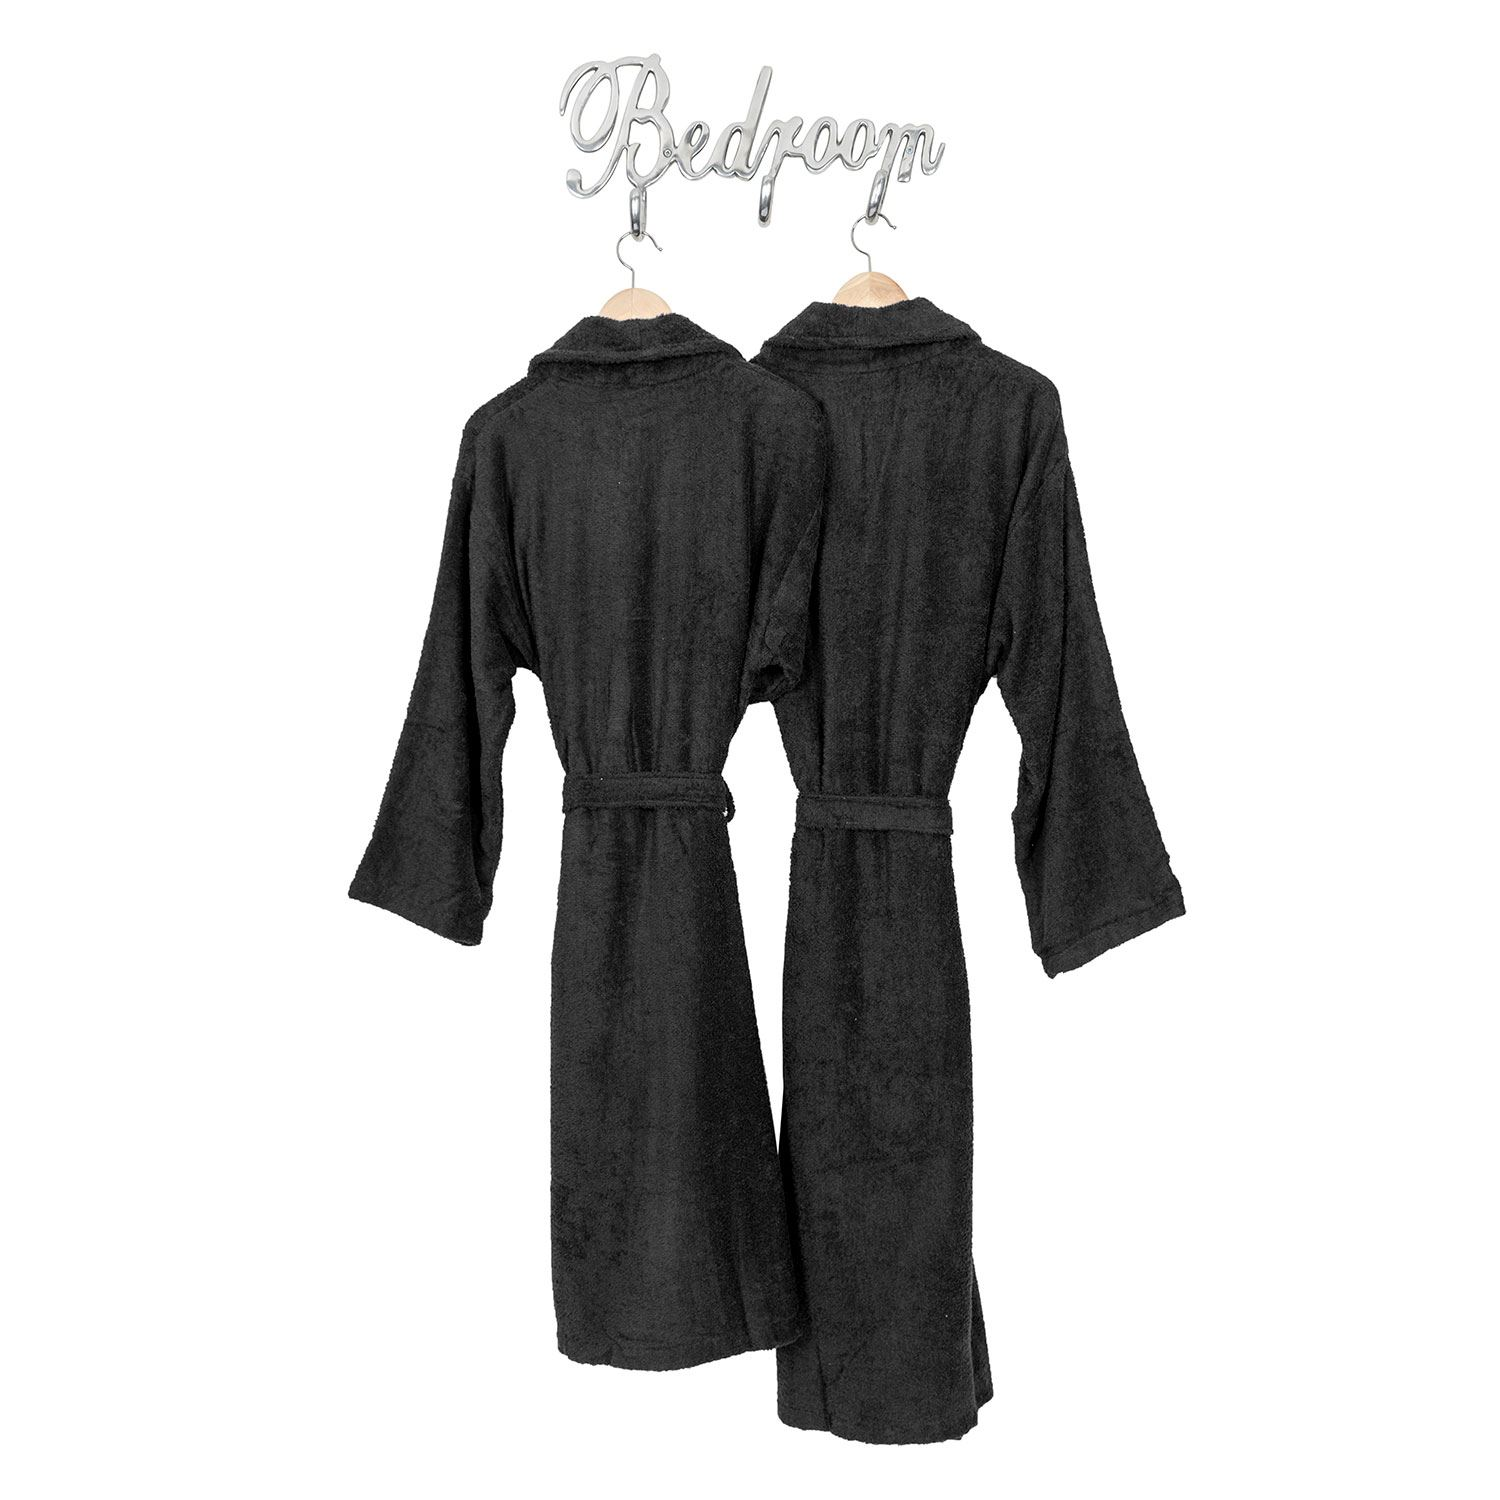 Details about Men Women Shawl Collar Bathrobe Egyptian Cotton Terry  Towelling Dressing Gown 1399412ab